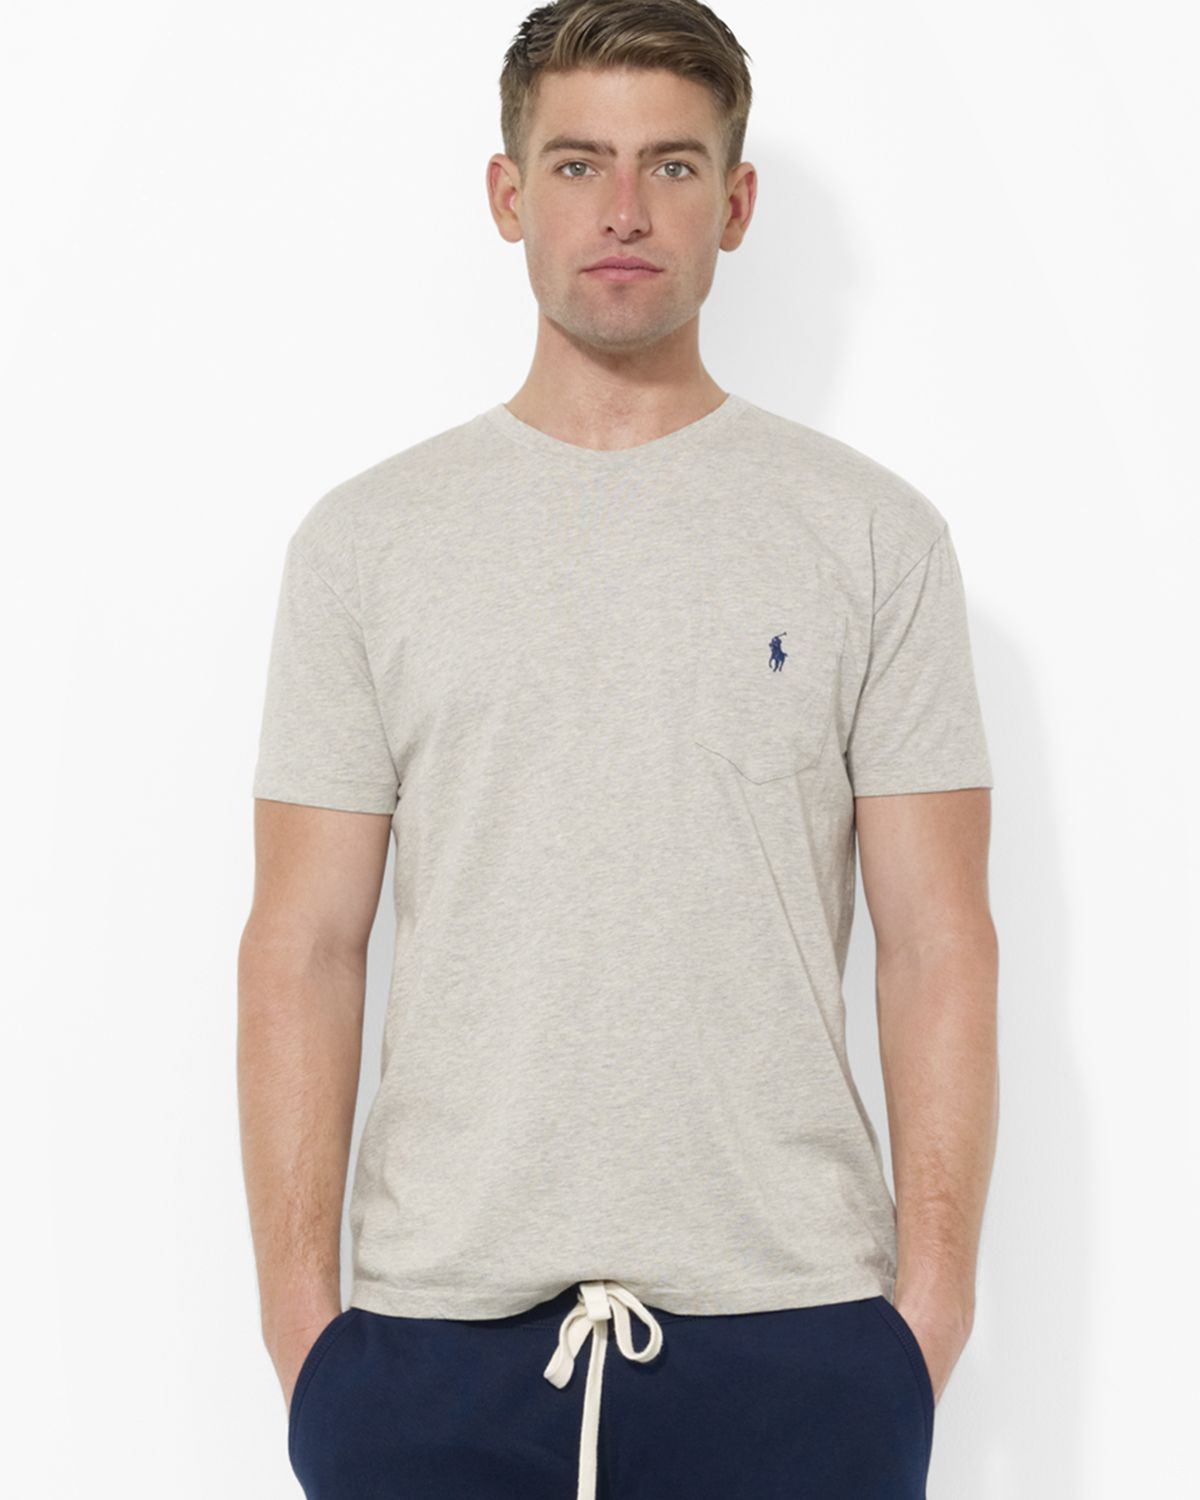 Classic Polo Lauren Pocket Fit Ralph T Shirt CQtsrhd